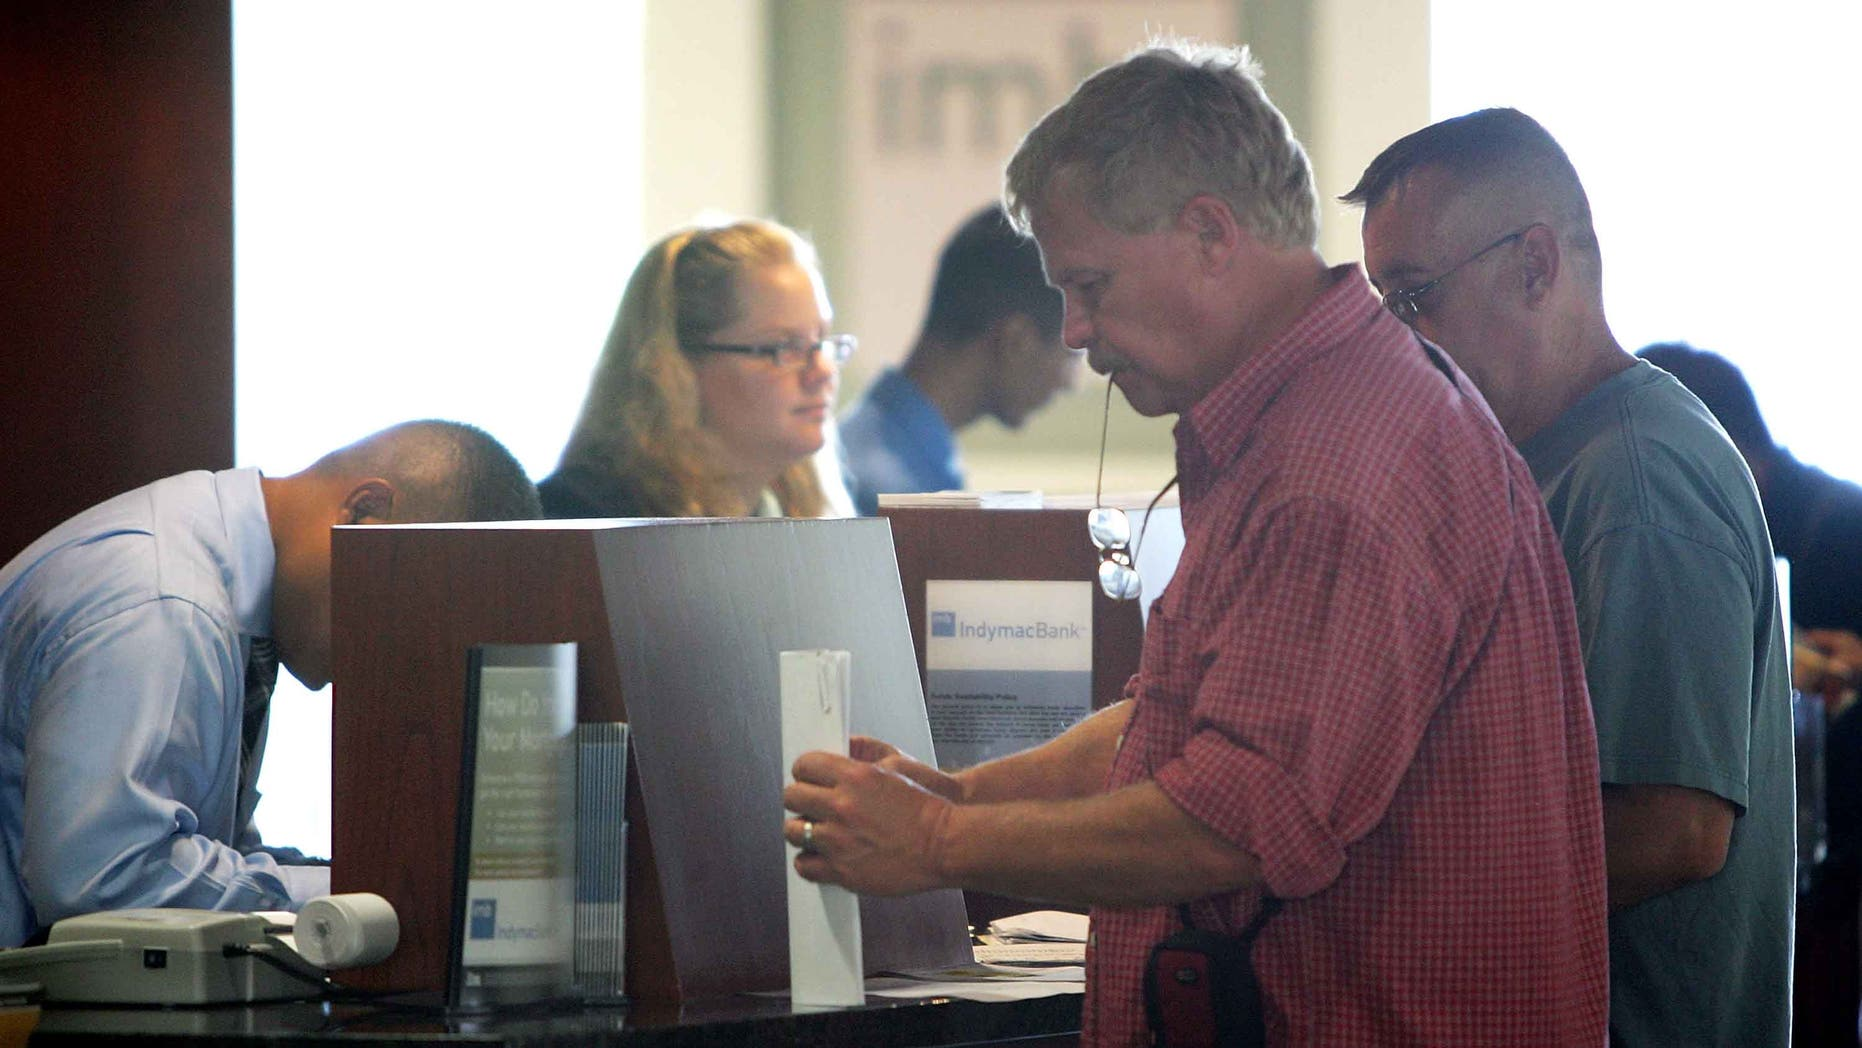 PASADENA, CA - JULY 14:  Customers (R) carry out their transactions with tellers after waiting in line with hundreds of other nervous customers to get into an IndyMac Bank, open for the first time since the July 11 federal government takeover of the thrift, on July 14, 2008 in Pasadena, California. IndyMac, which was already in trouble because of it's subprime mortgages with people with bad or no credit history, was shut down three hours early on a Friday and remained closed over the weekend after customers withdrew $1.9 billion. Regulators say it is the second-largest bank failure ever in the US. As all 33 IndyMac branches reopen, customers with home-equity credit lines will reportedly find their accounts frozen while transactions involving deposit accounts will be conducted as normal under the name, IndyMac Federal Bank. Over the weekend, the Federal Reserve also worked on shoring up lenders Fannie Mae and Freddie Mac which control almost half of the national mortgage debt and are in danger of collapse as well.  (Photo by David McNew/Getty Images)